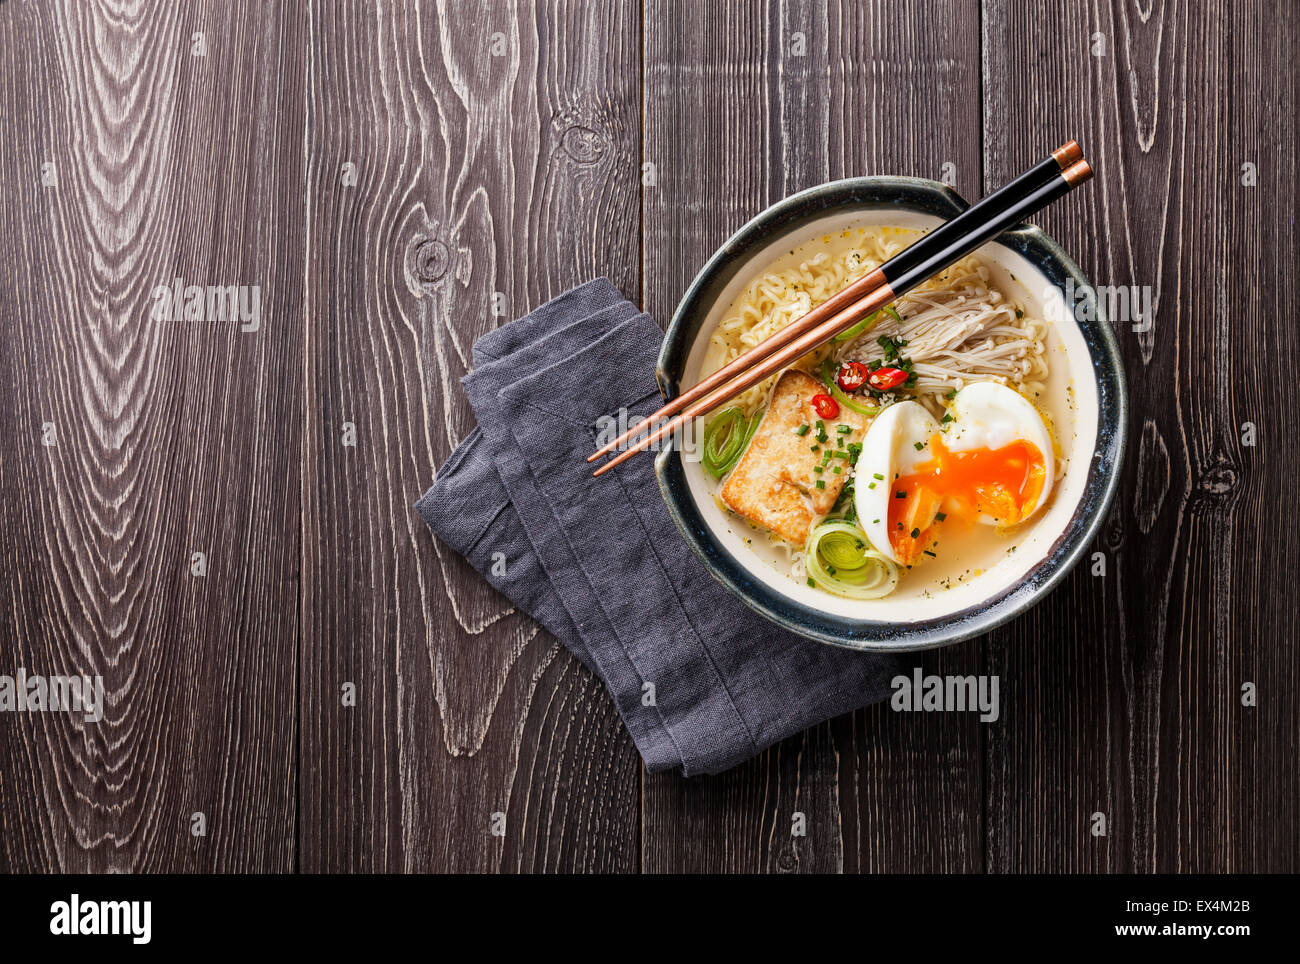 Chinese noodles with egg, tofu and enoki in bowl on gray wooden background - Stock Image